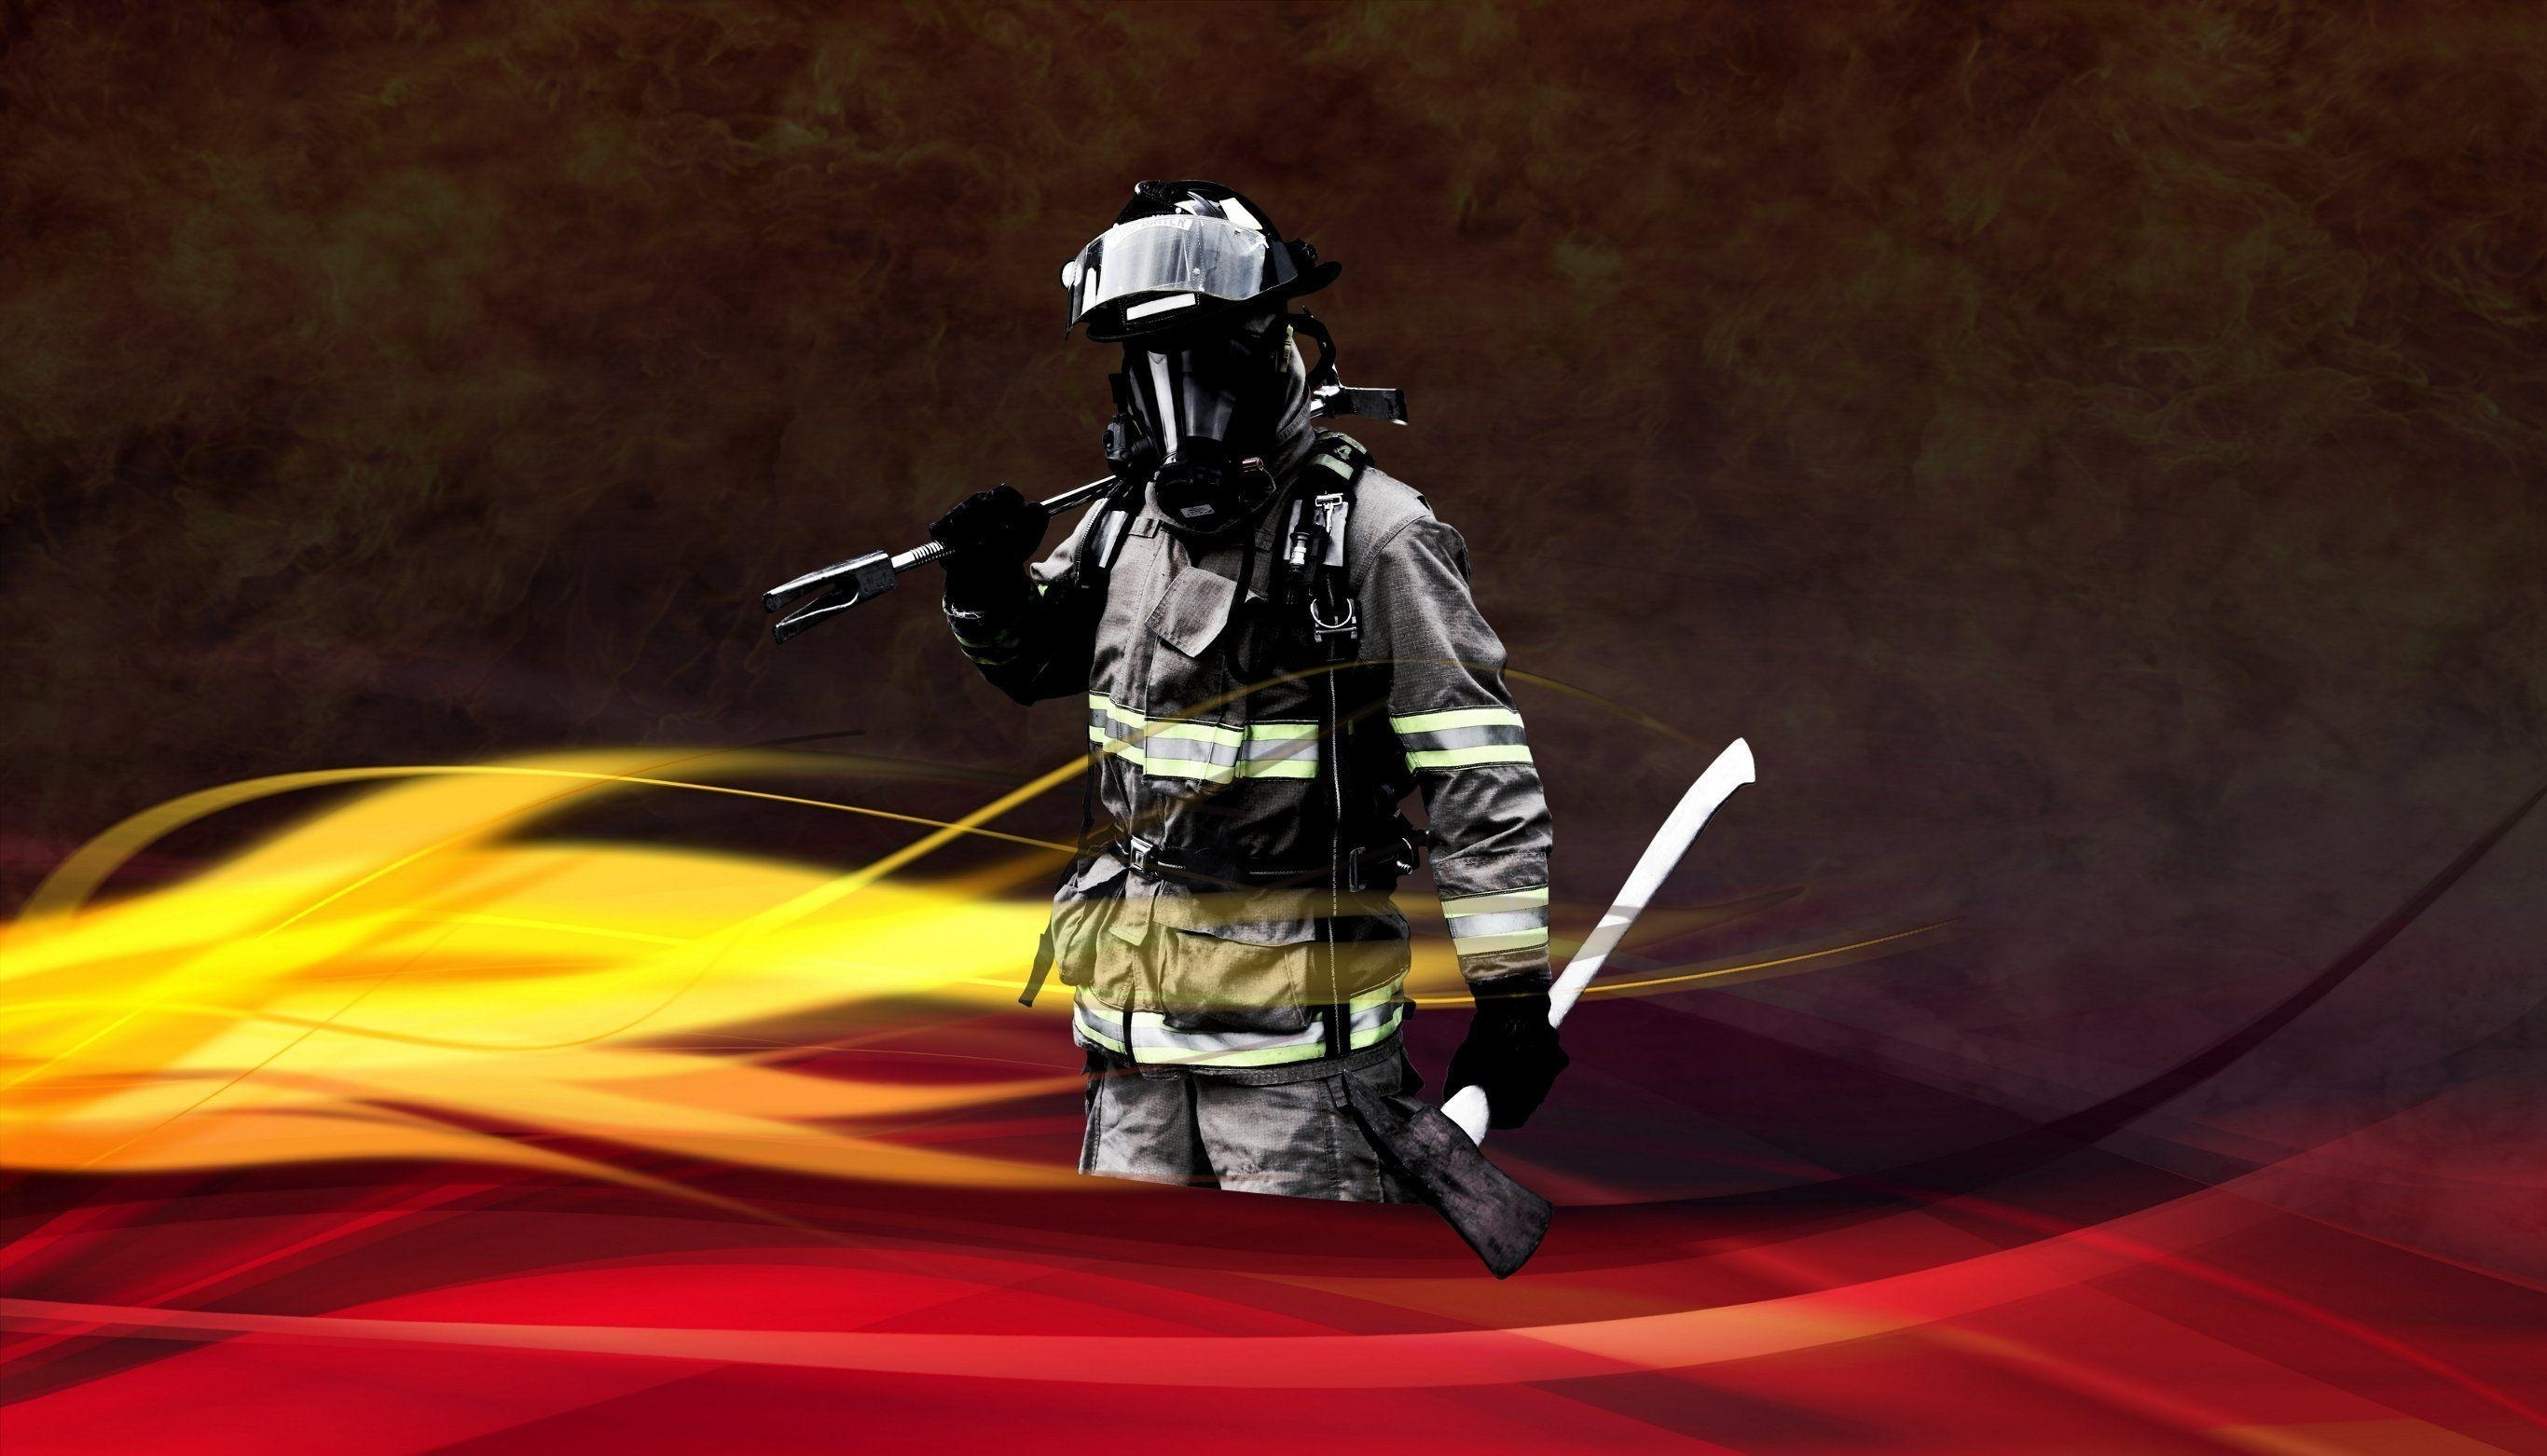 firefighter desktop backgrounds - wallpaper cave